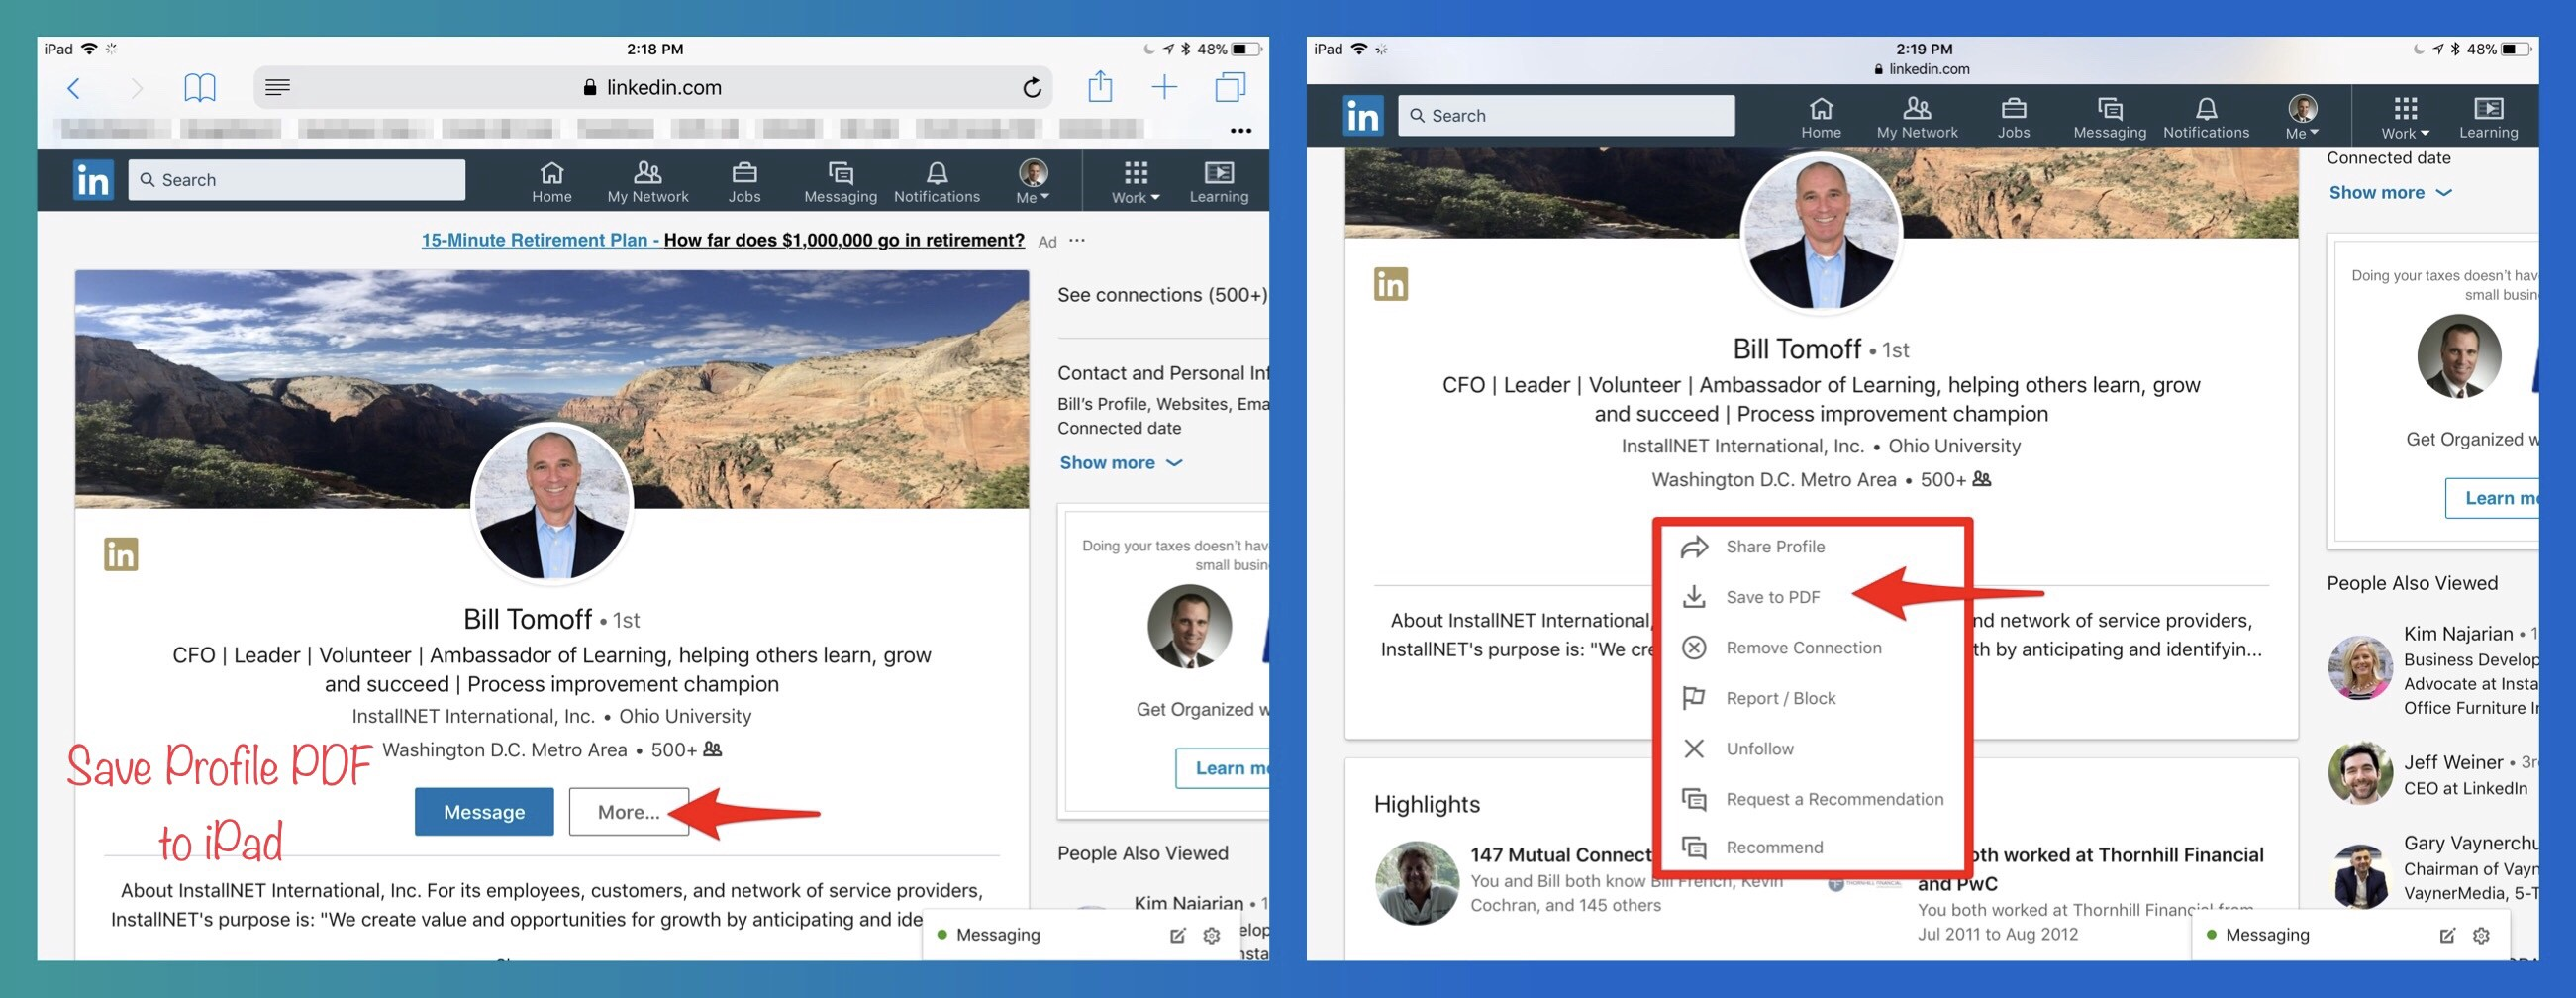 Linkedin Tip Download A Profile Pdf On Your Mobile Device